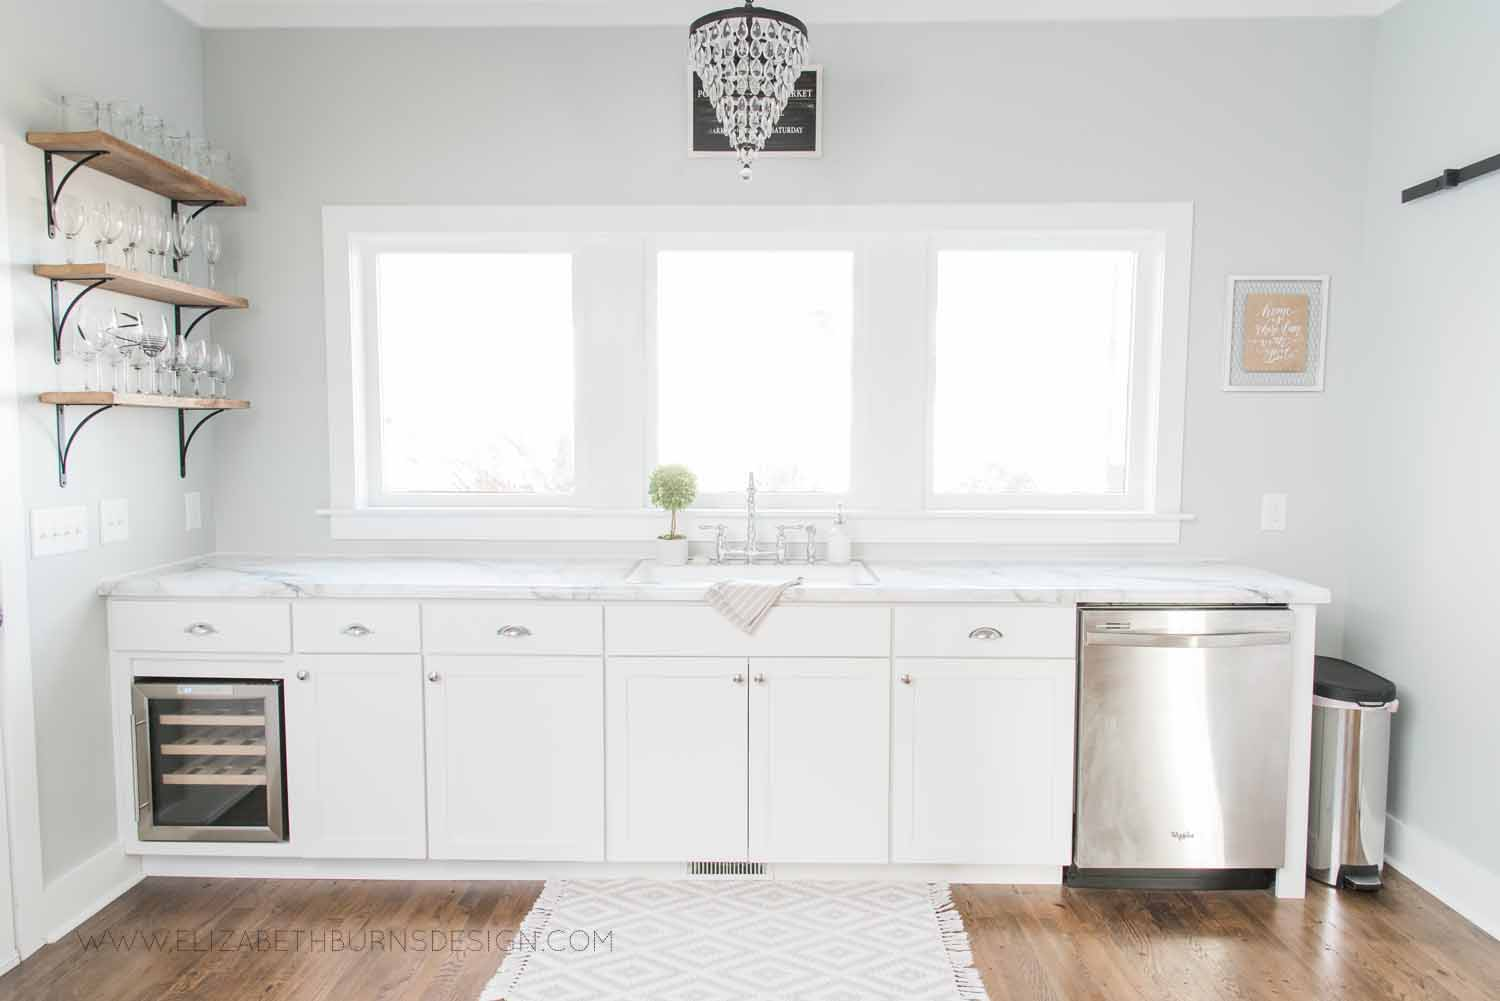 Elizabeth Burns Design Raleigh Interior Designer  Farmhouse Fixer Upper Cottage Renovation, Sherwin Williams Silver Strand SW 7057 White Shaker Cabinets Formica Marble Counters Kitchen (5).jpg